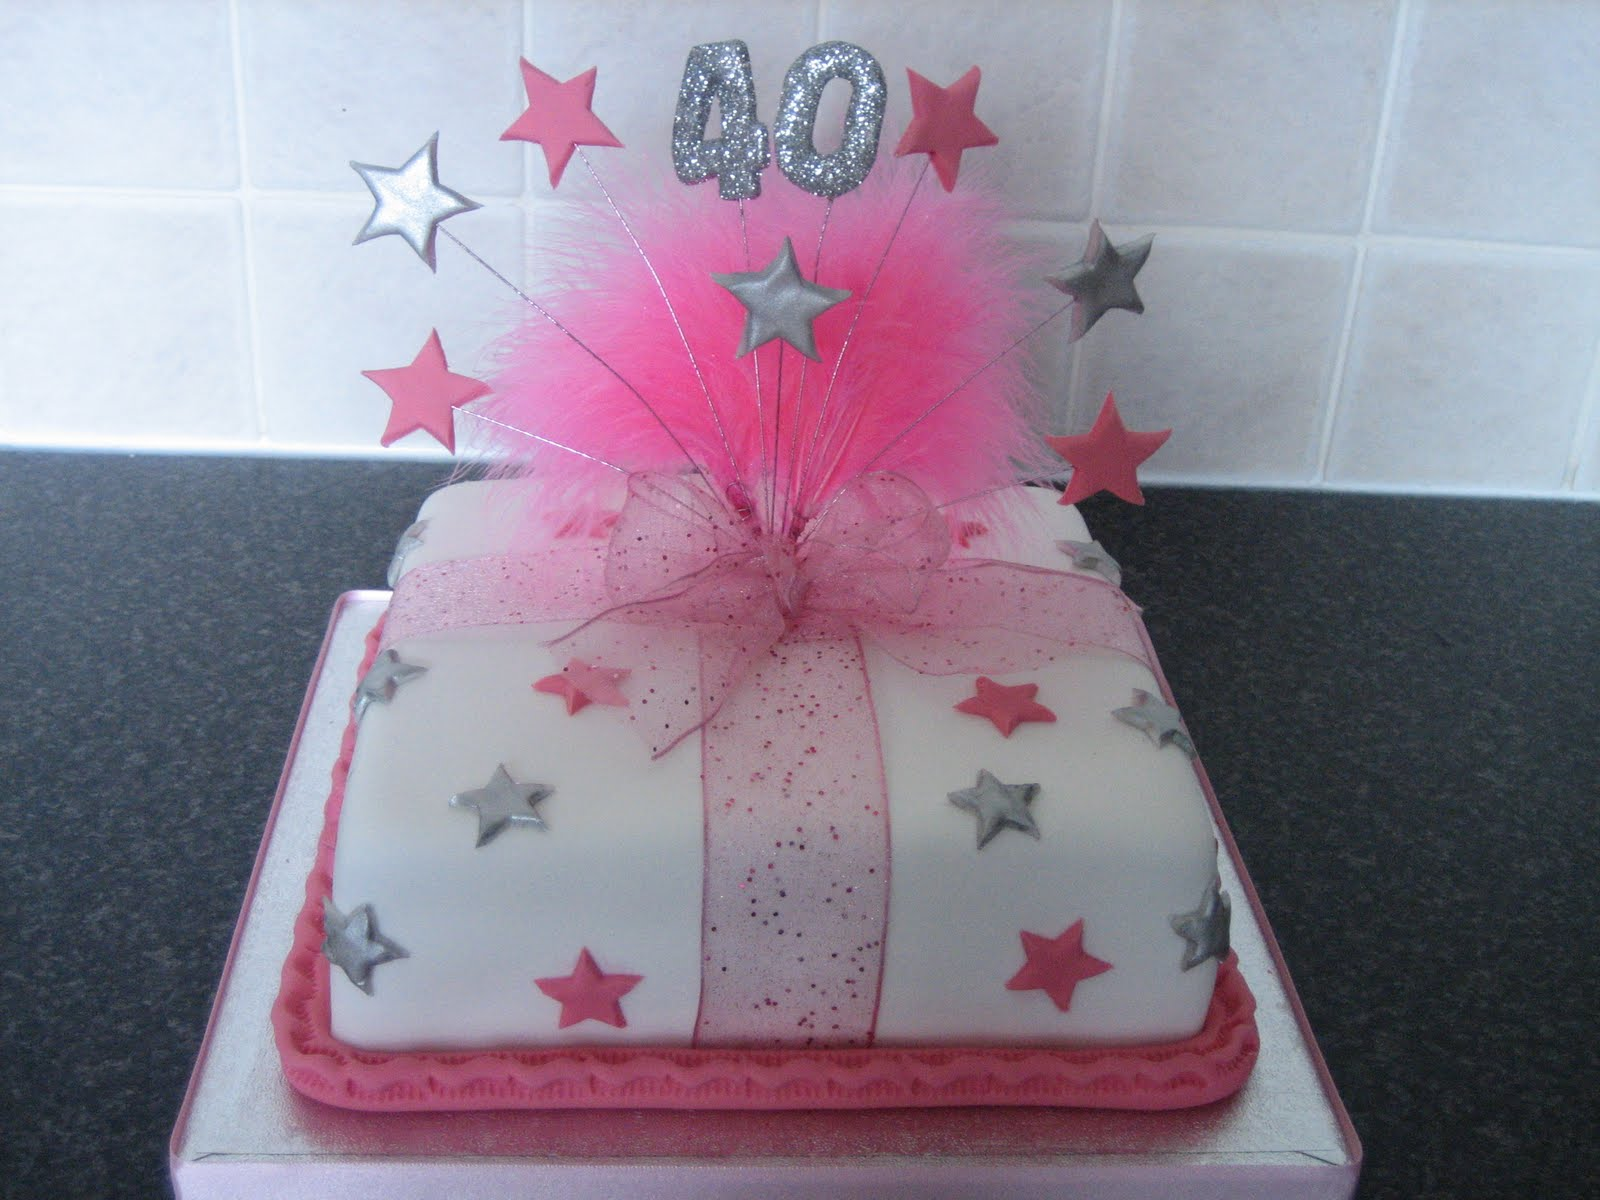 View Full Size | More sarah t cakes 40th birthday cake | Source Link